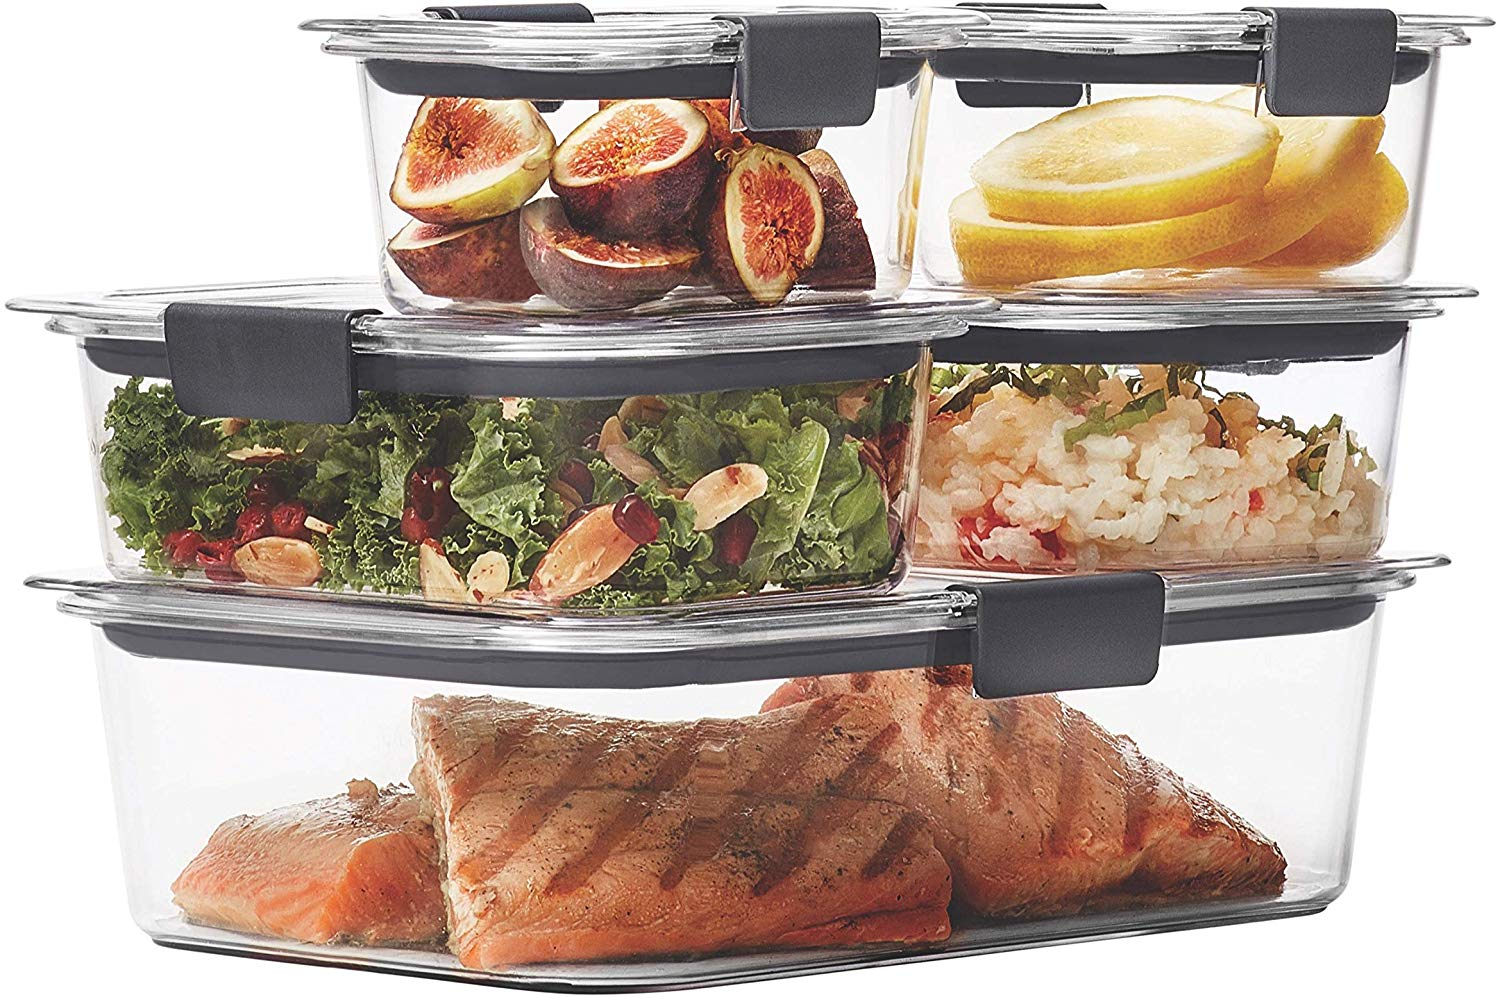 Leak-Proof, Airtight Food Storage Containers